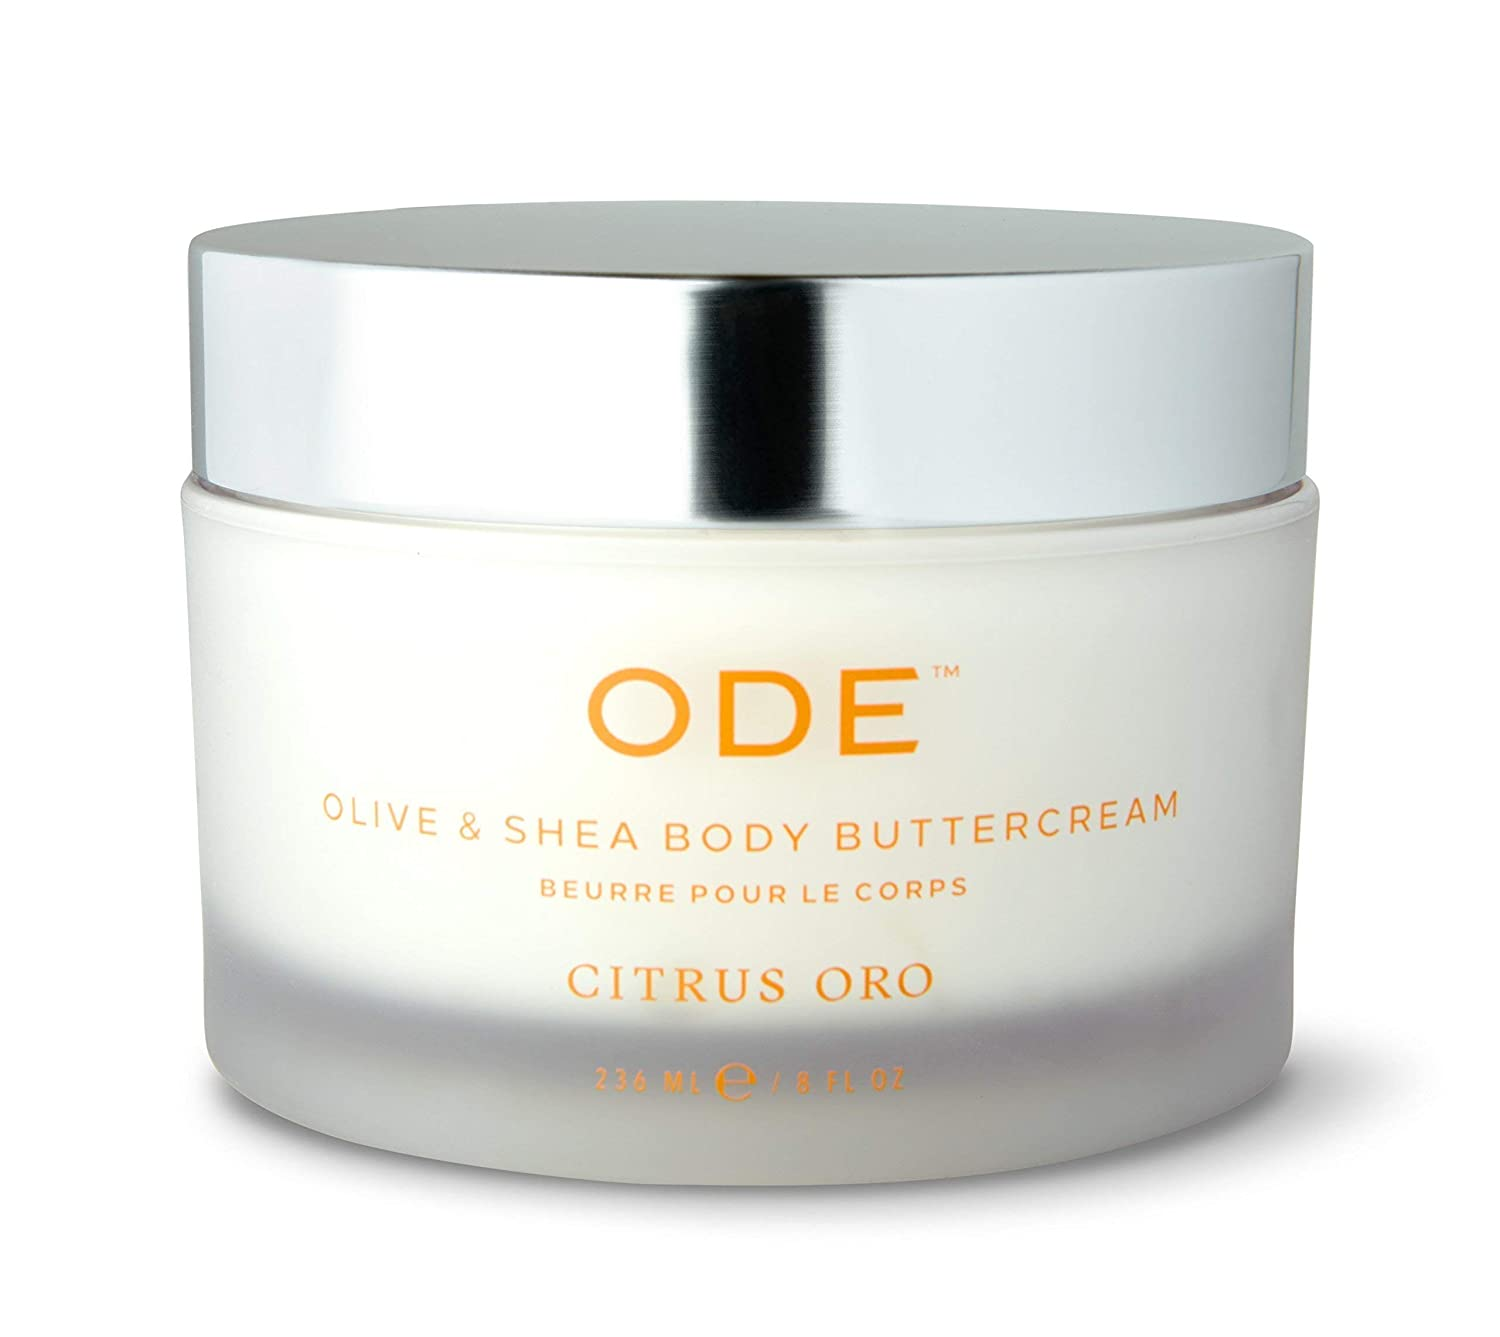 Max 88% OFF ODE Natural Beauty Olive Shea Body 8oz Max 46% OFF OR - Buttercream CITRUS